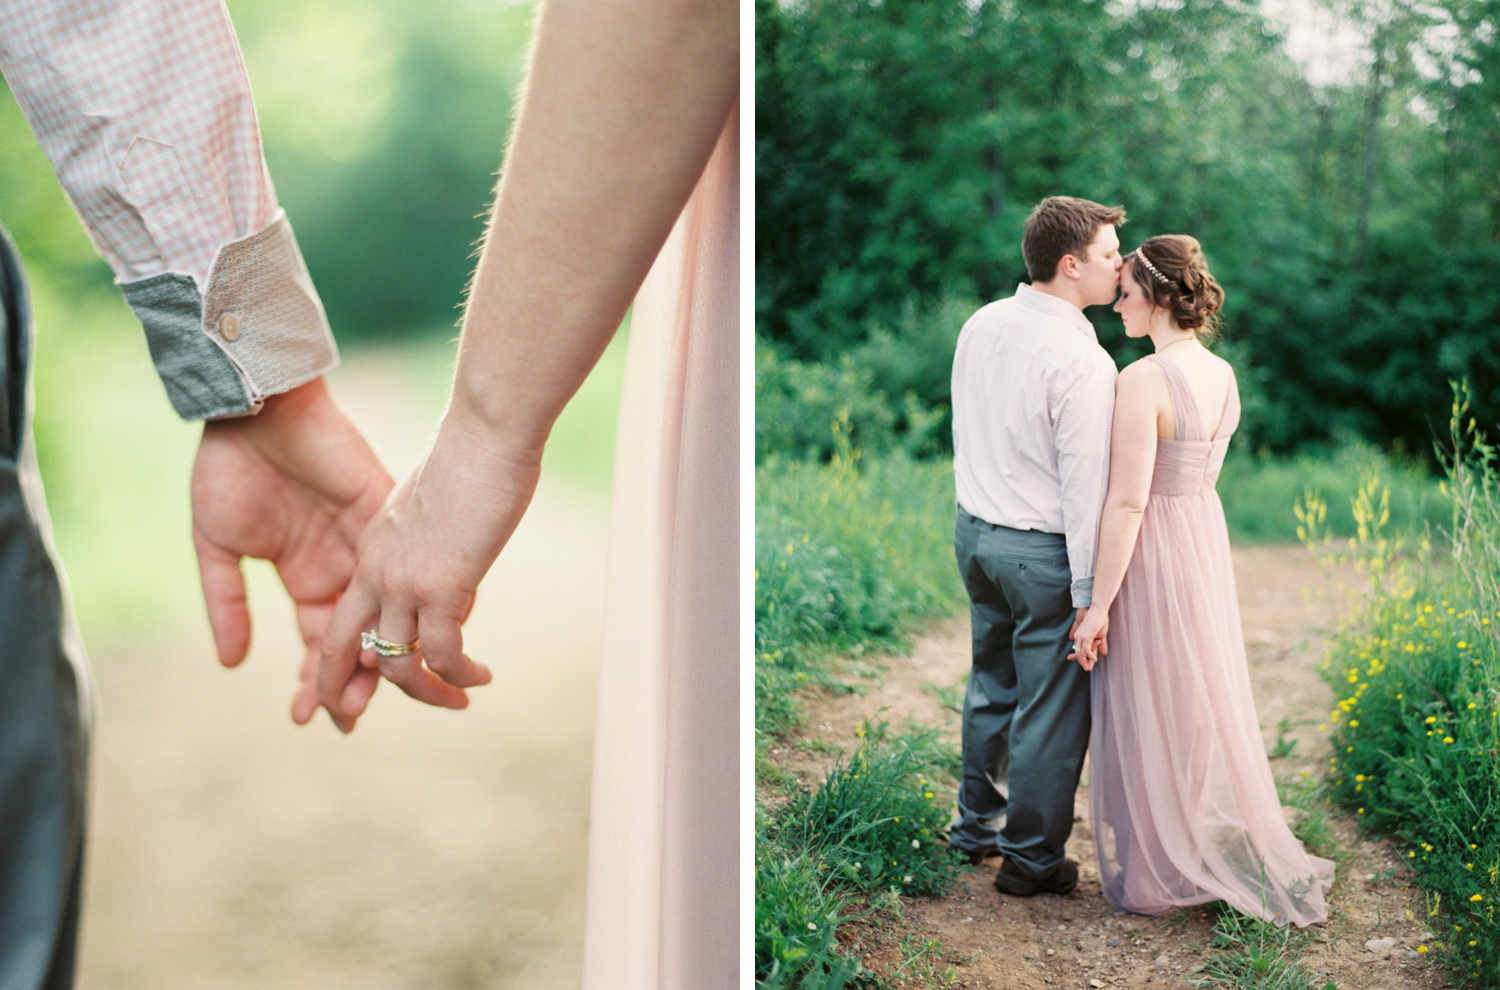 kateweinsteinphoto_heidi_cal_anniversary_engagement_milwaukee_wedding.jpg